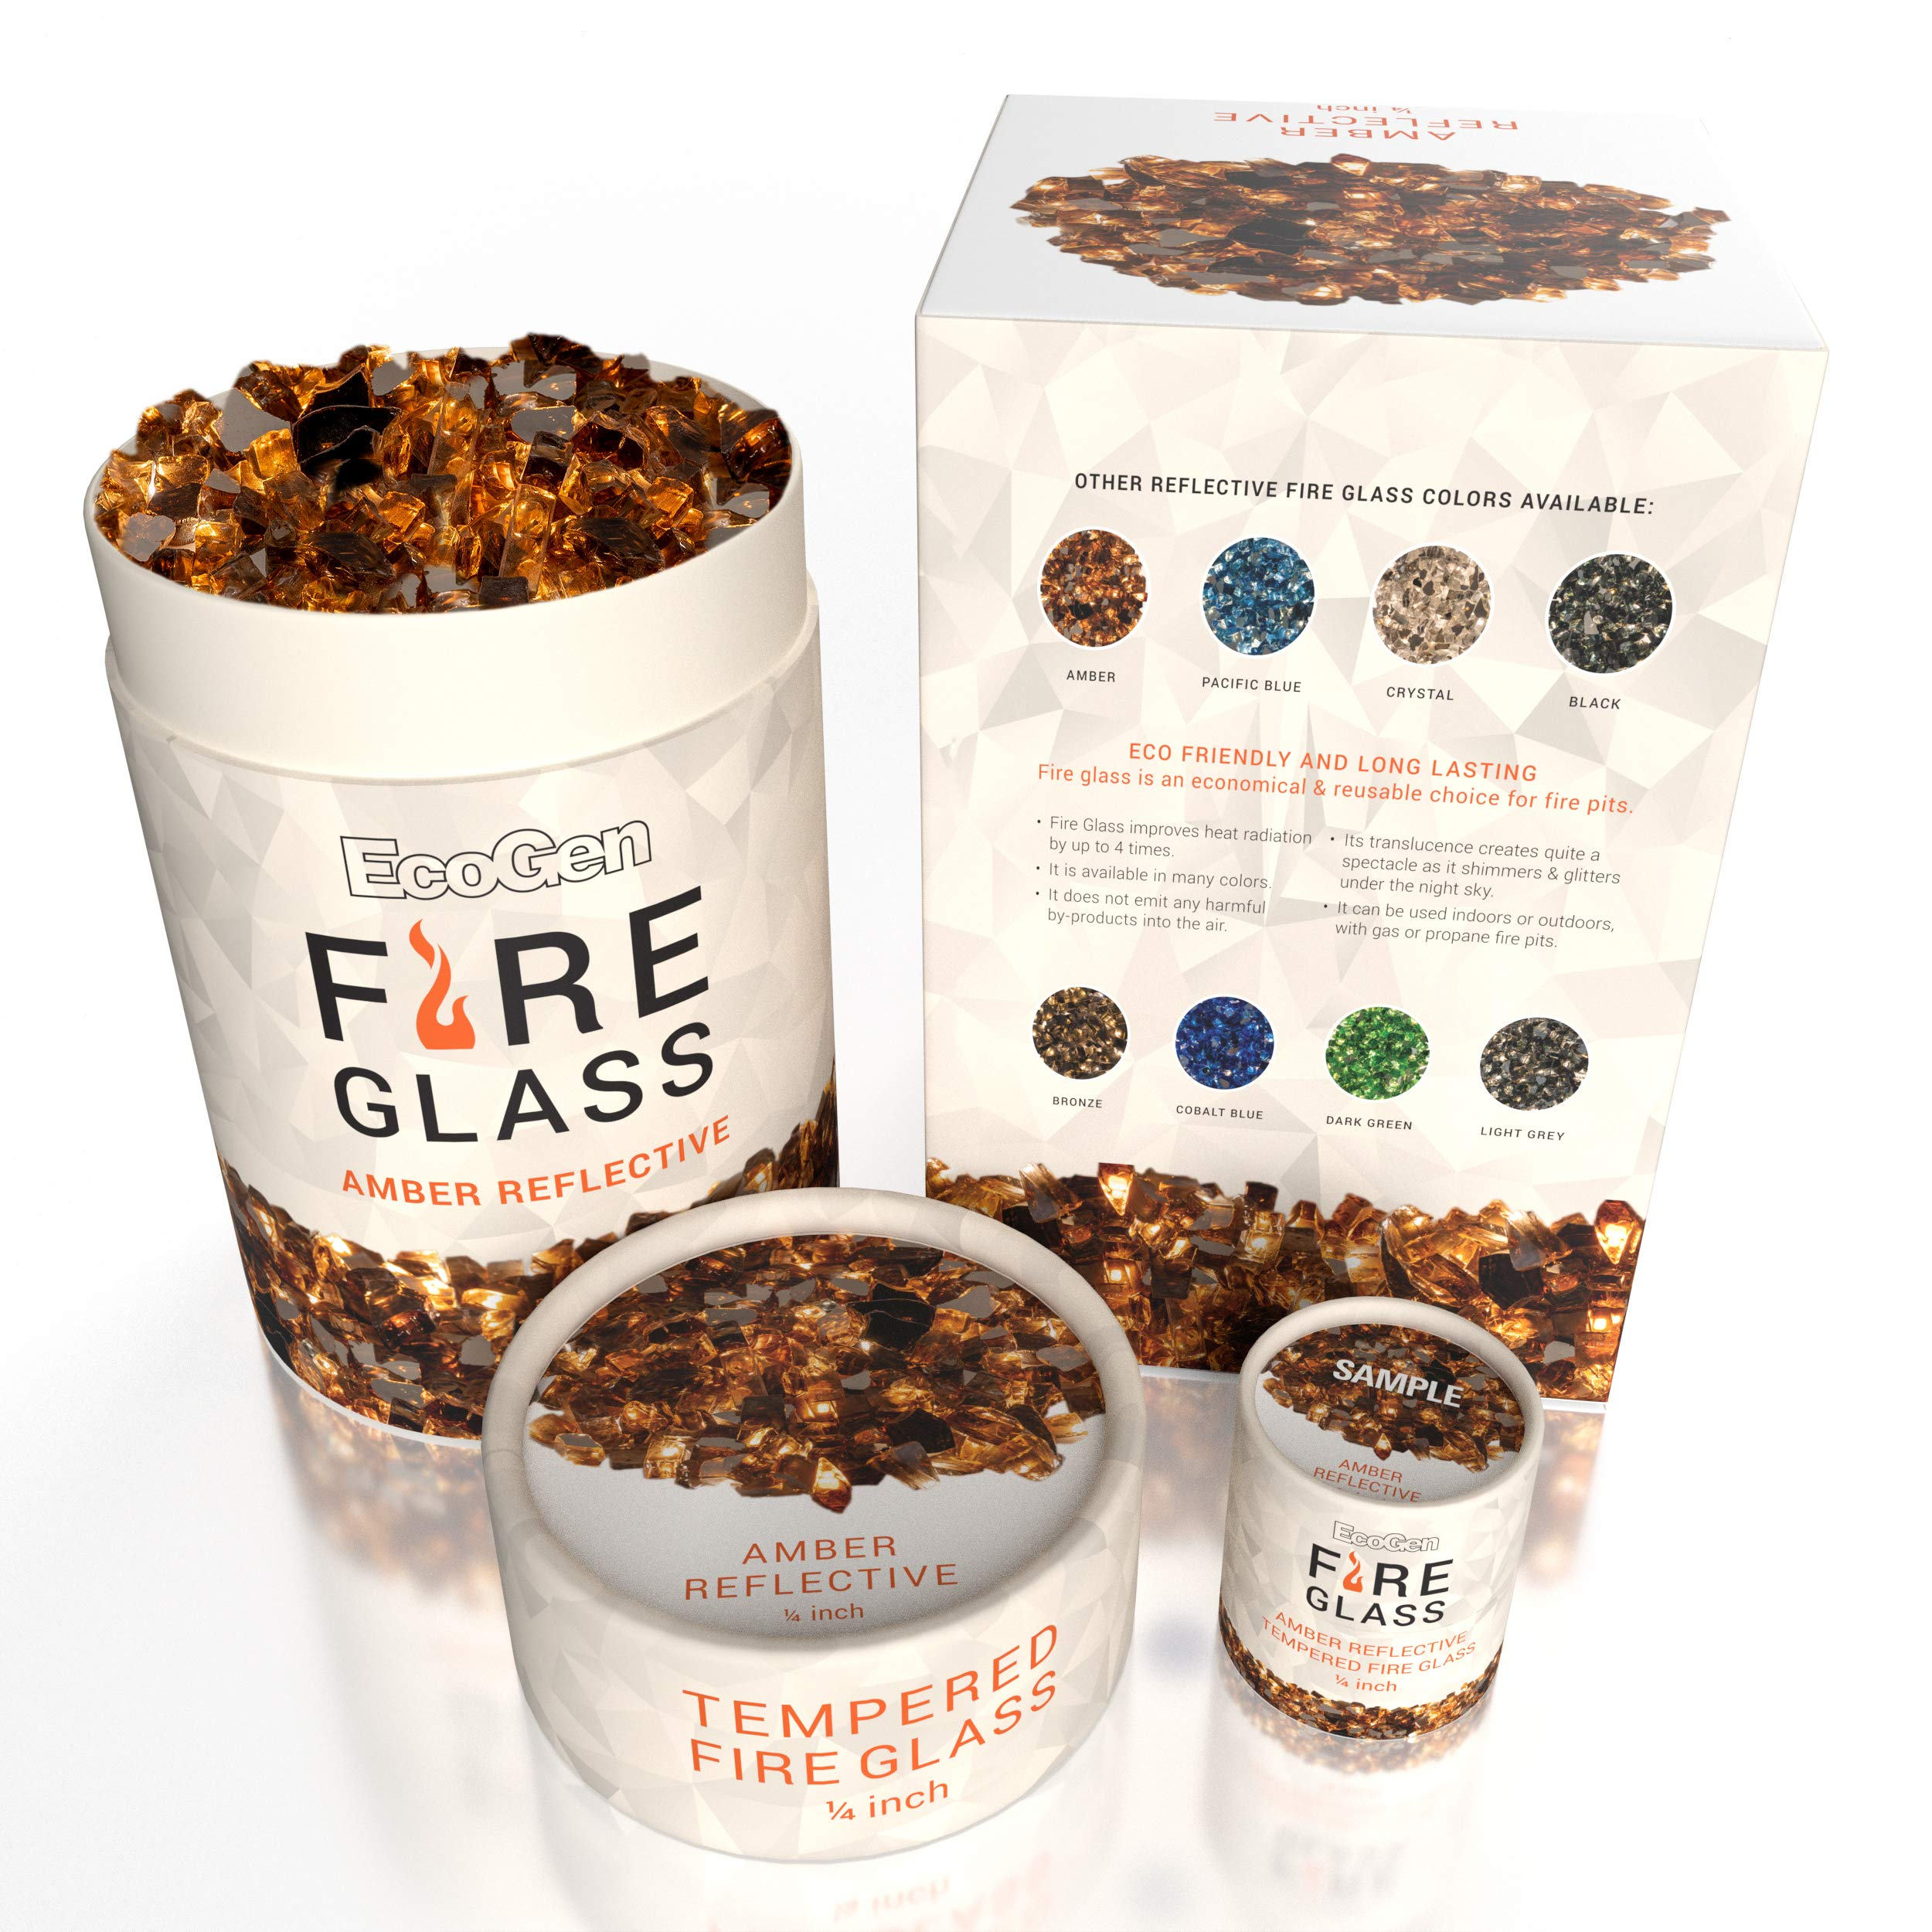 EcoGen Fire Glass Rocks for Outdoor Fire Pits and Indoor Fireplace, Color, Optimal Heat for Propane or Gas, Tempered and Reflective, Eco-Friendly Packaging, Amber 1/4 inch Reflective 12 lbs.